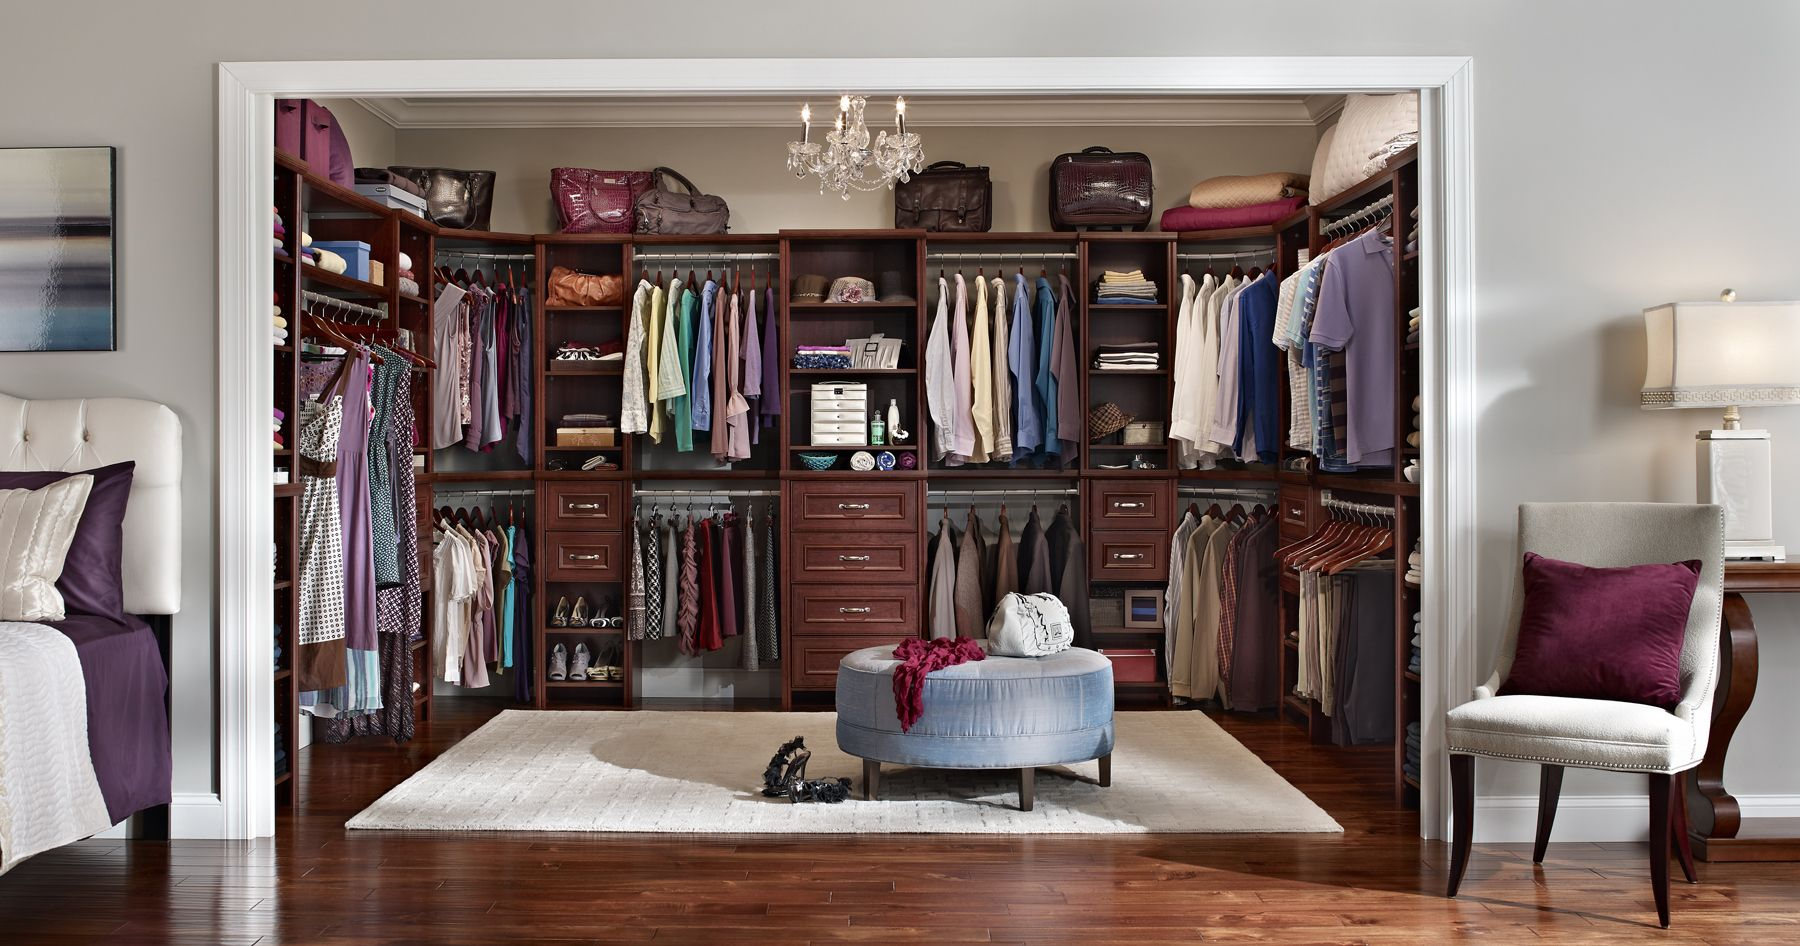 Master Closet Design Ideas 10x10 closet design ideas remodels photos Bedroom Closet Photos Design Ideas Pinterest Shops